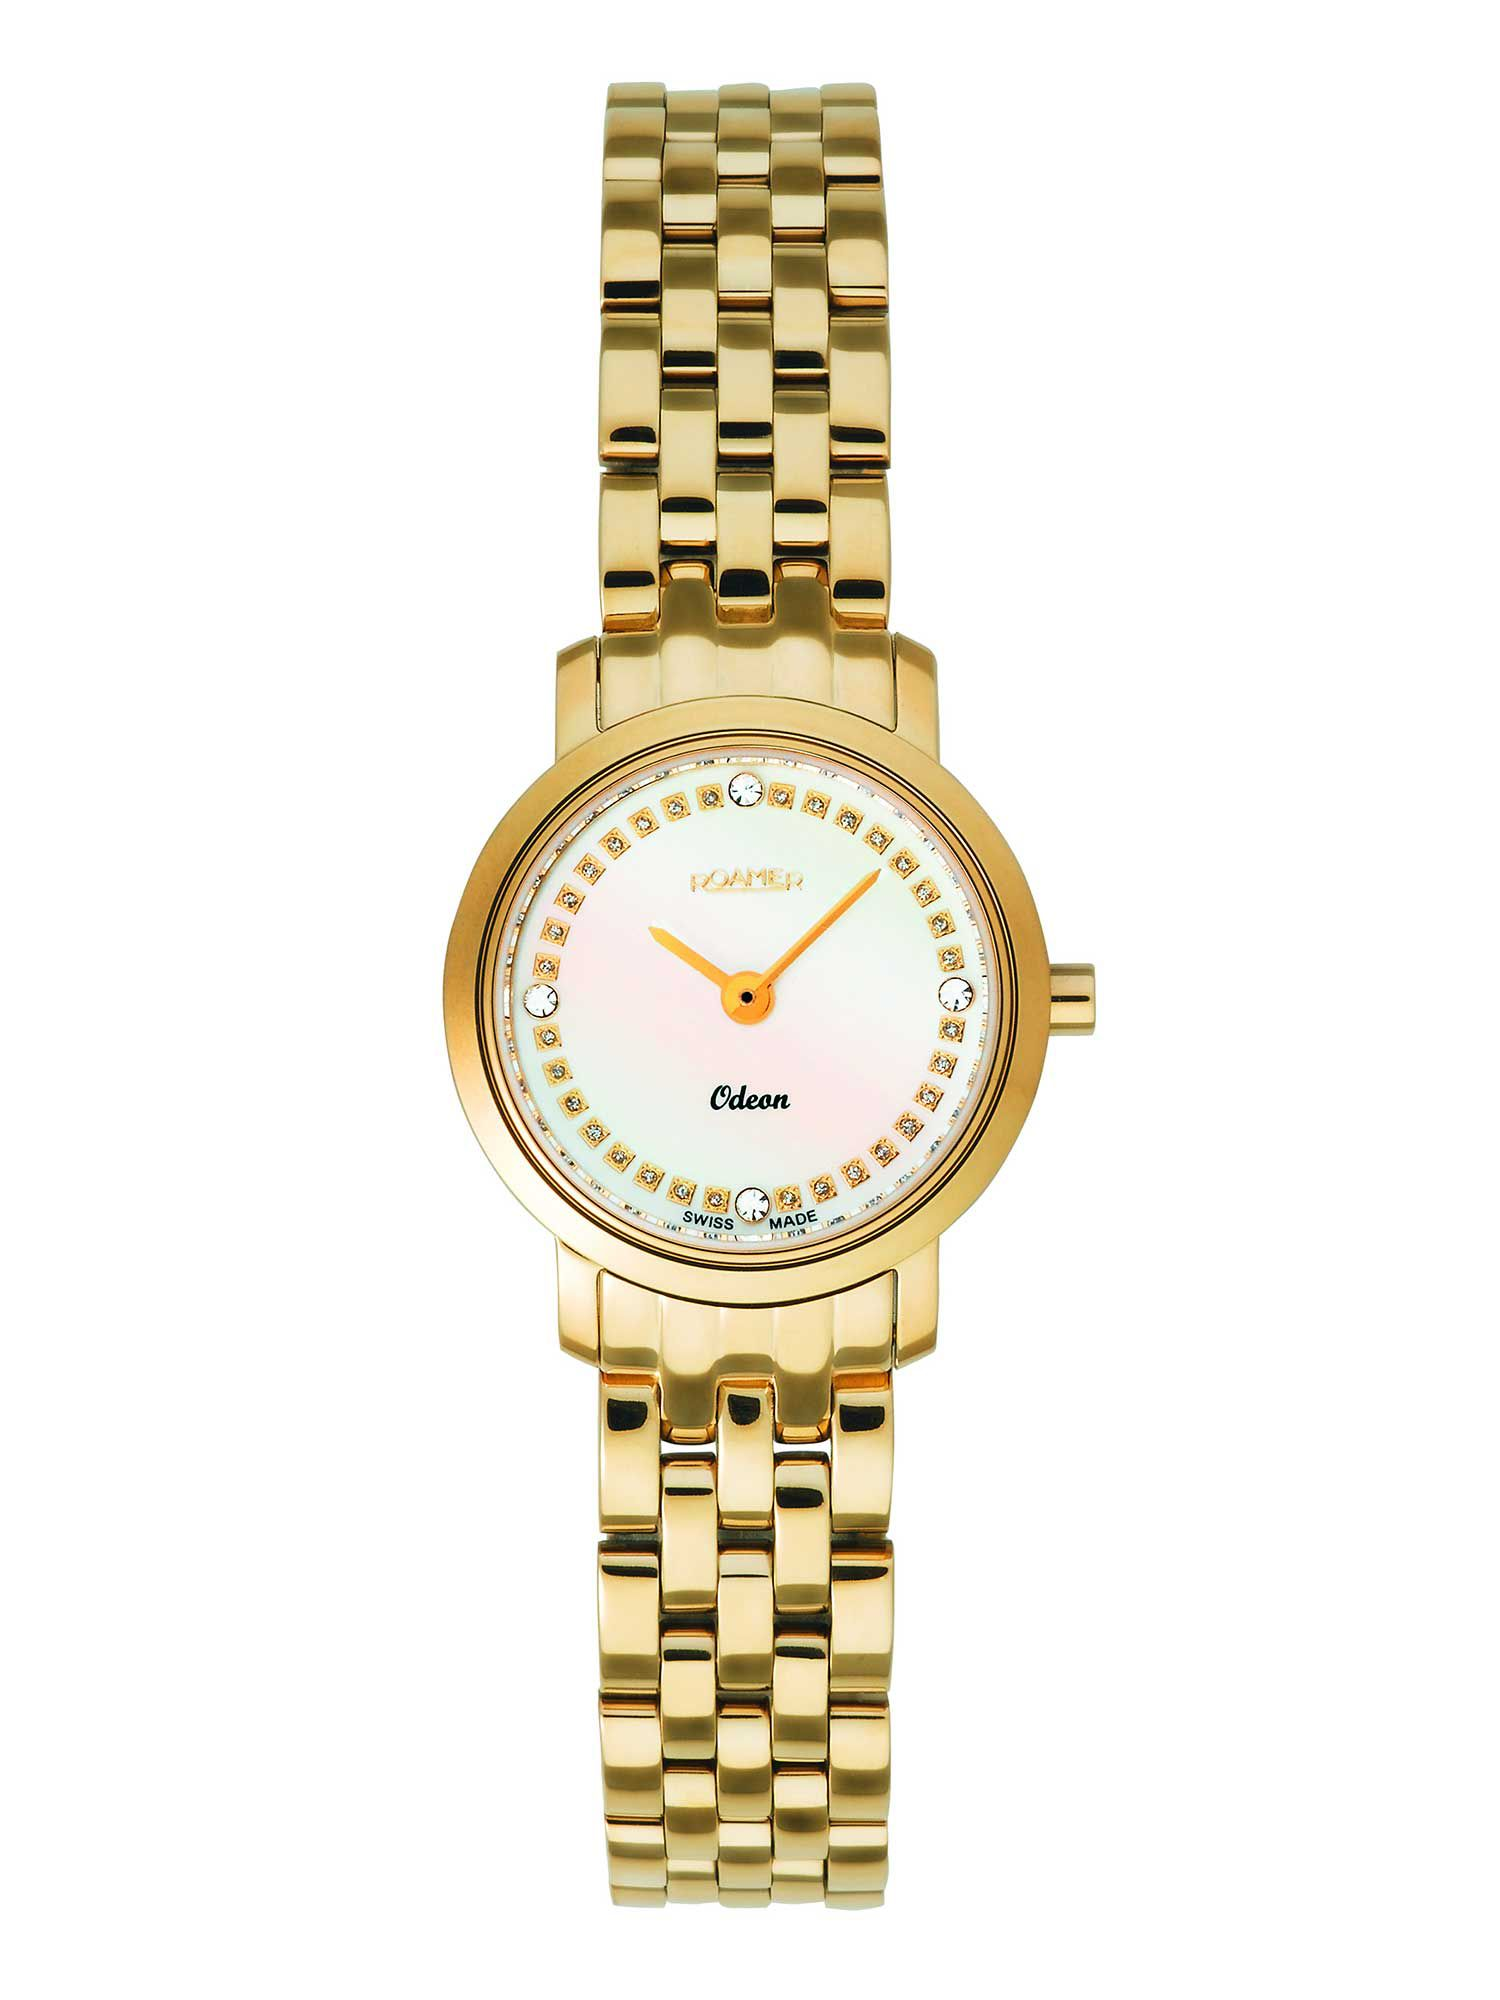 BL45.10ROX Odeon gold ladies watch